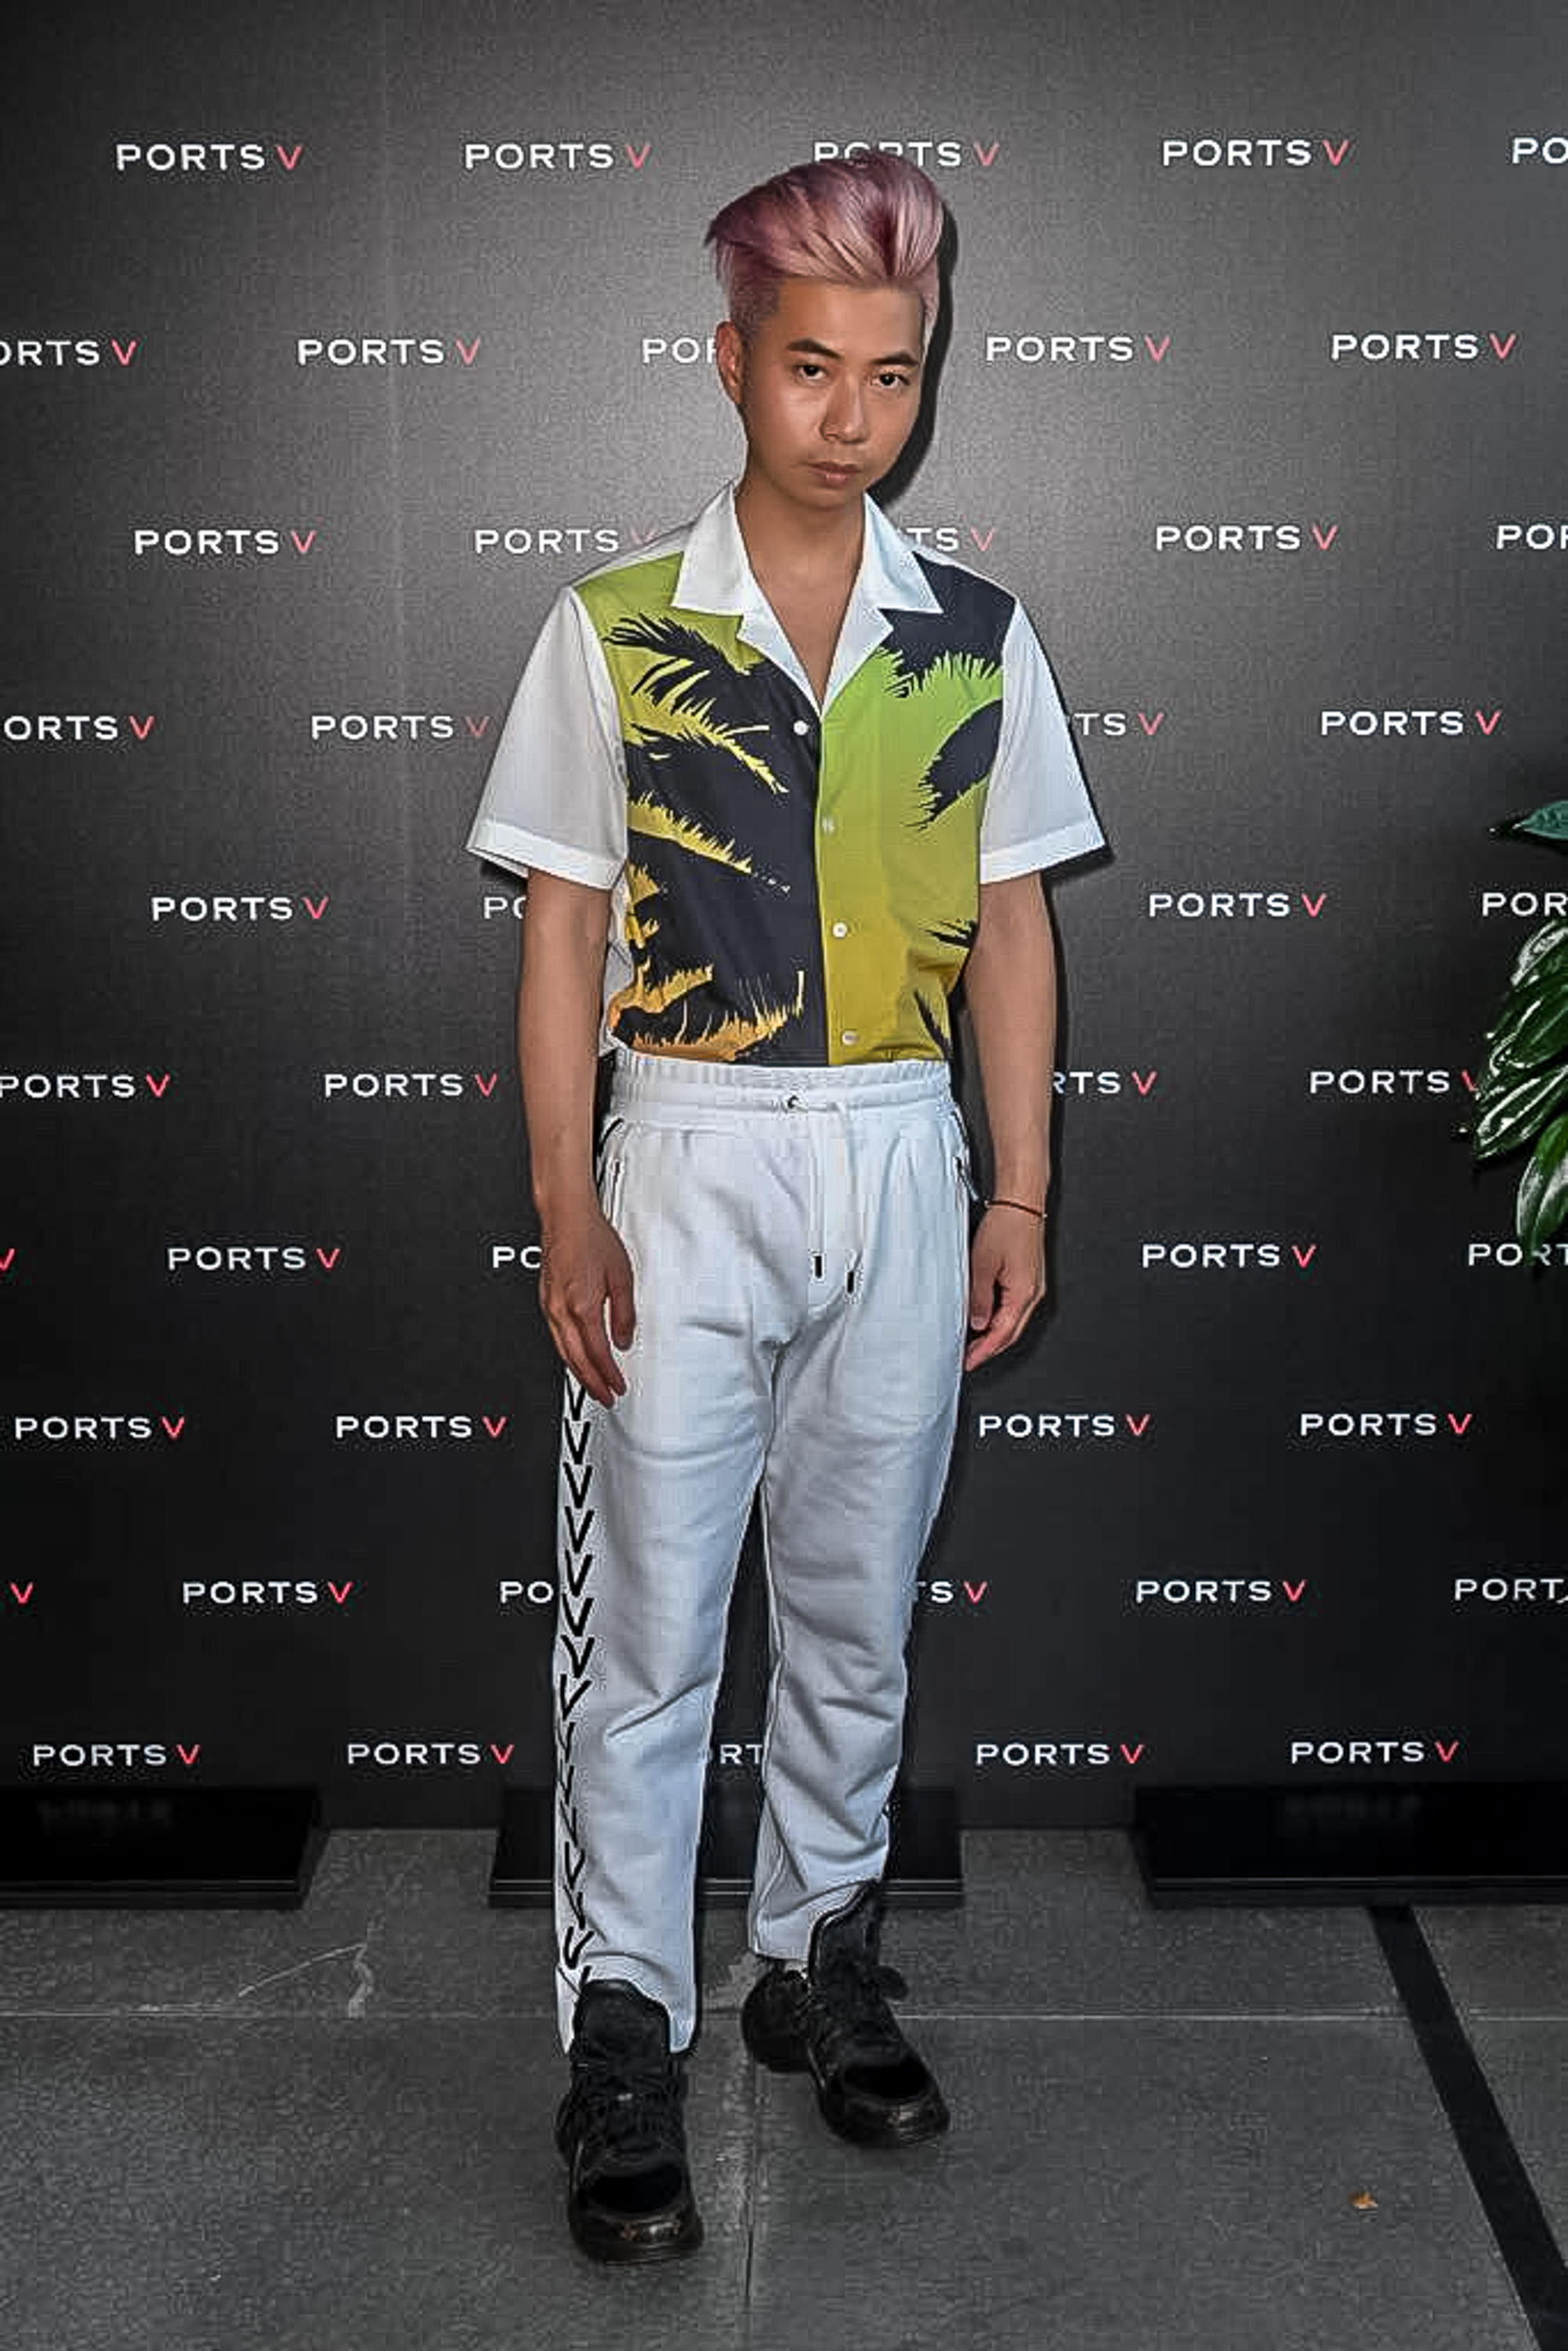 This post has been a long time coming. - You asked for more outfit posts. Well, your wish is my command. Here are all the outfits I've worn during Milan Fashion Week.*Wearing Ports V shirt + trouser